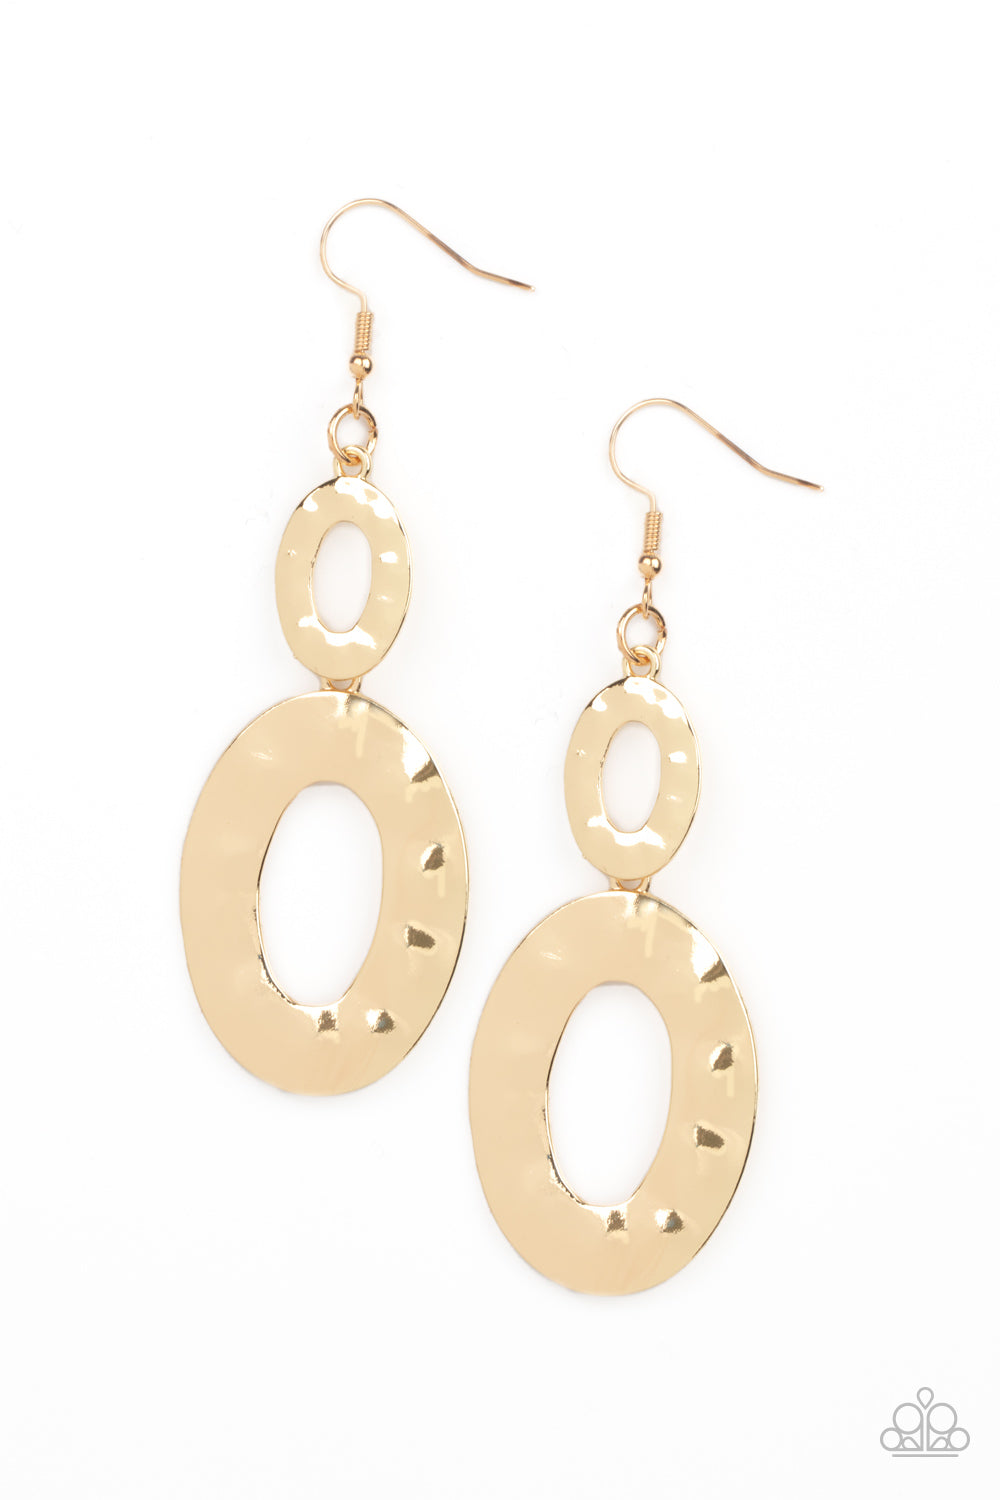 five-dollar-jewelry-bring-on-the-basics-gold-earrings-paparazzi-accessories